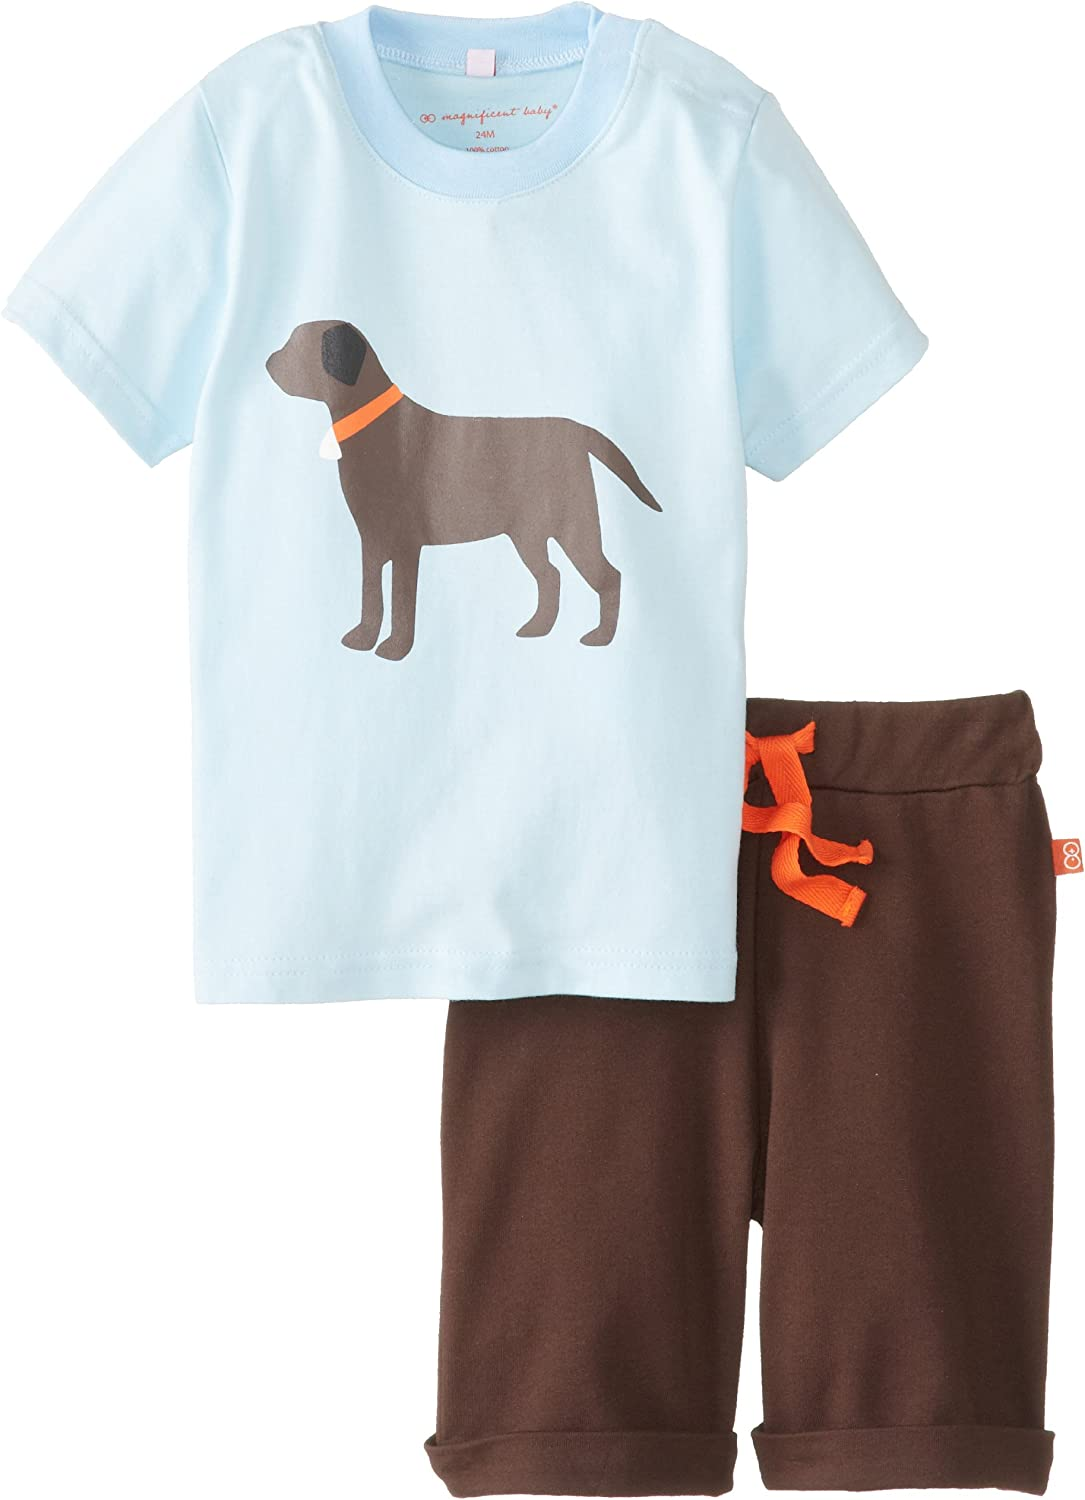 Magnificent Baby Baby Boys' Lab Tee with Short